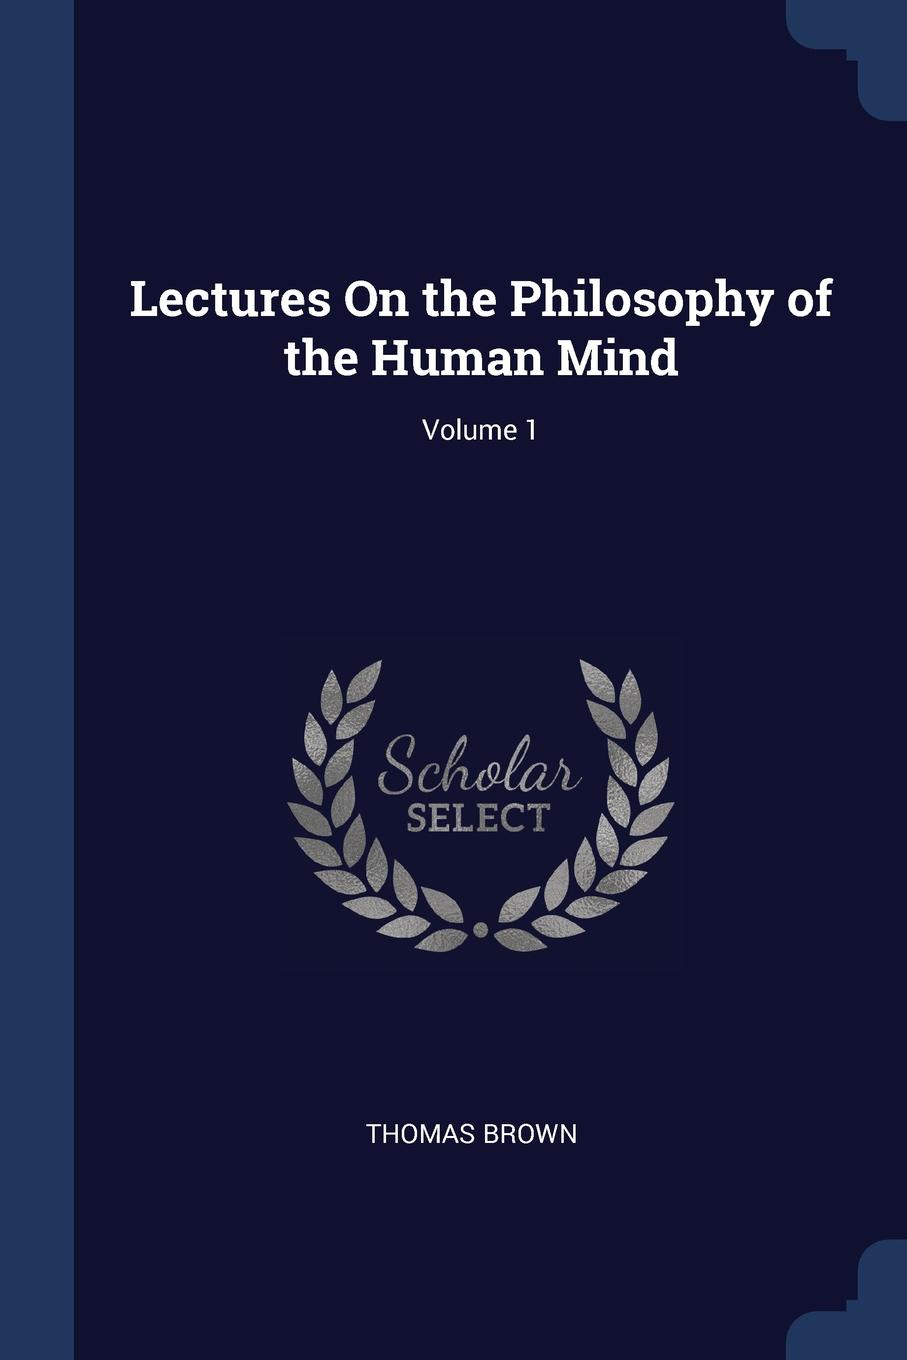 Lectures On the Philosophy of the Human Mind; Volume 1. Thomas Brown